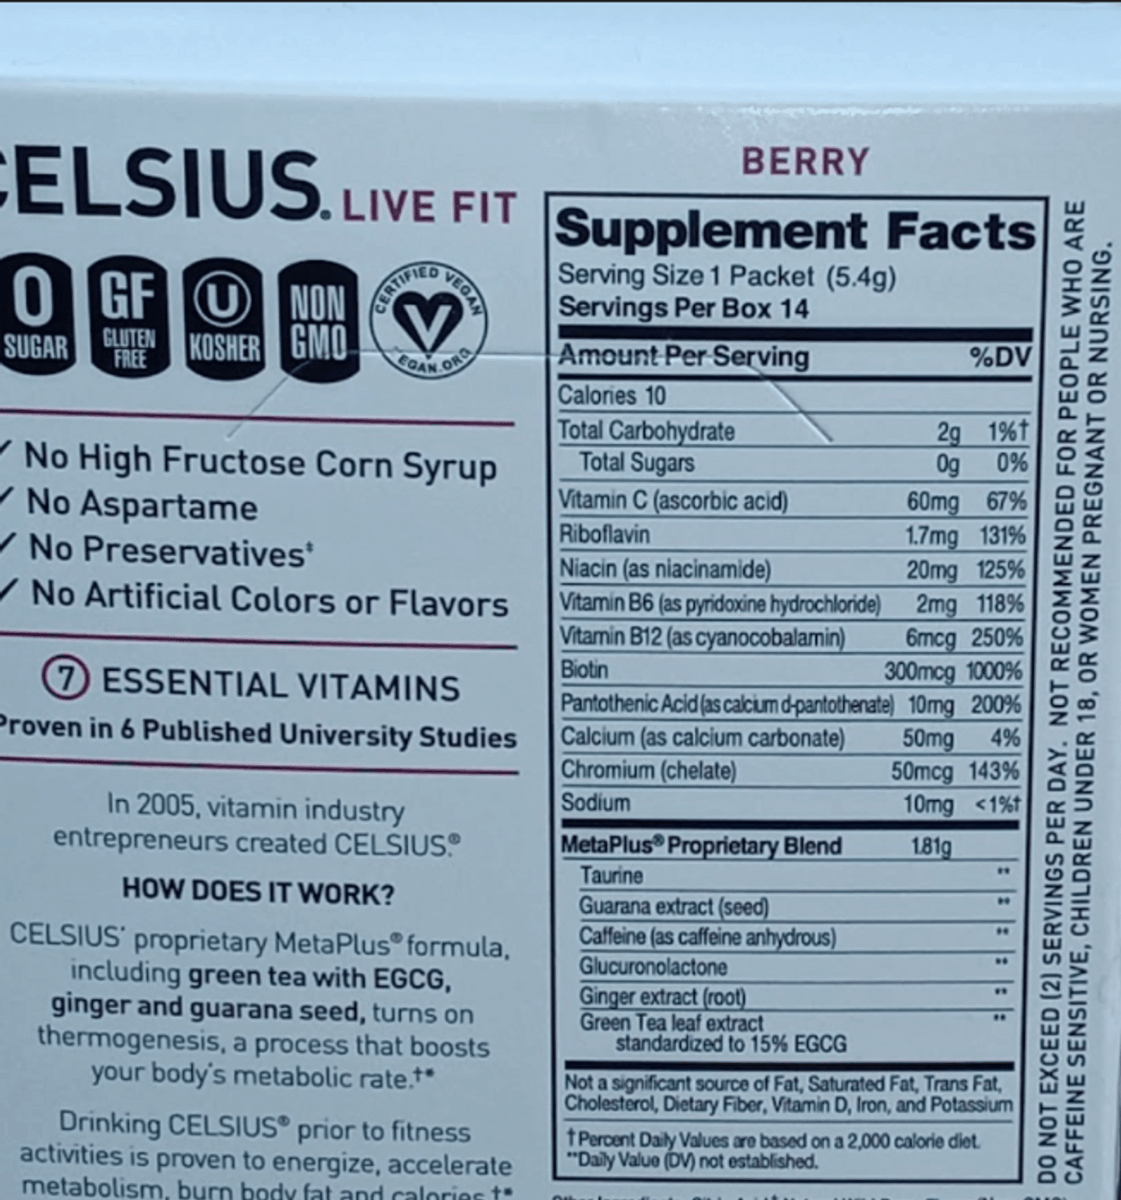 Nutritional value of Celsius On The Go.